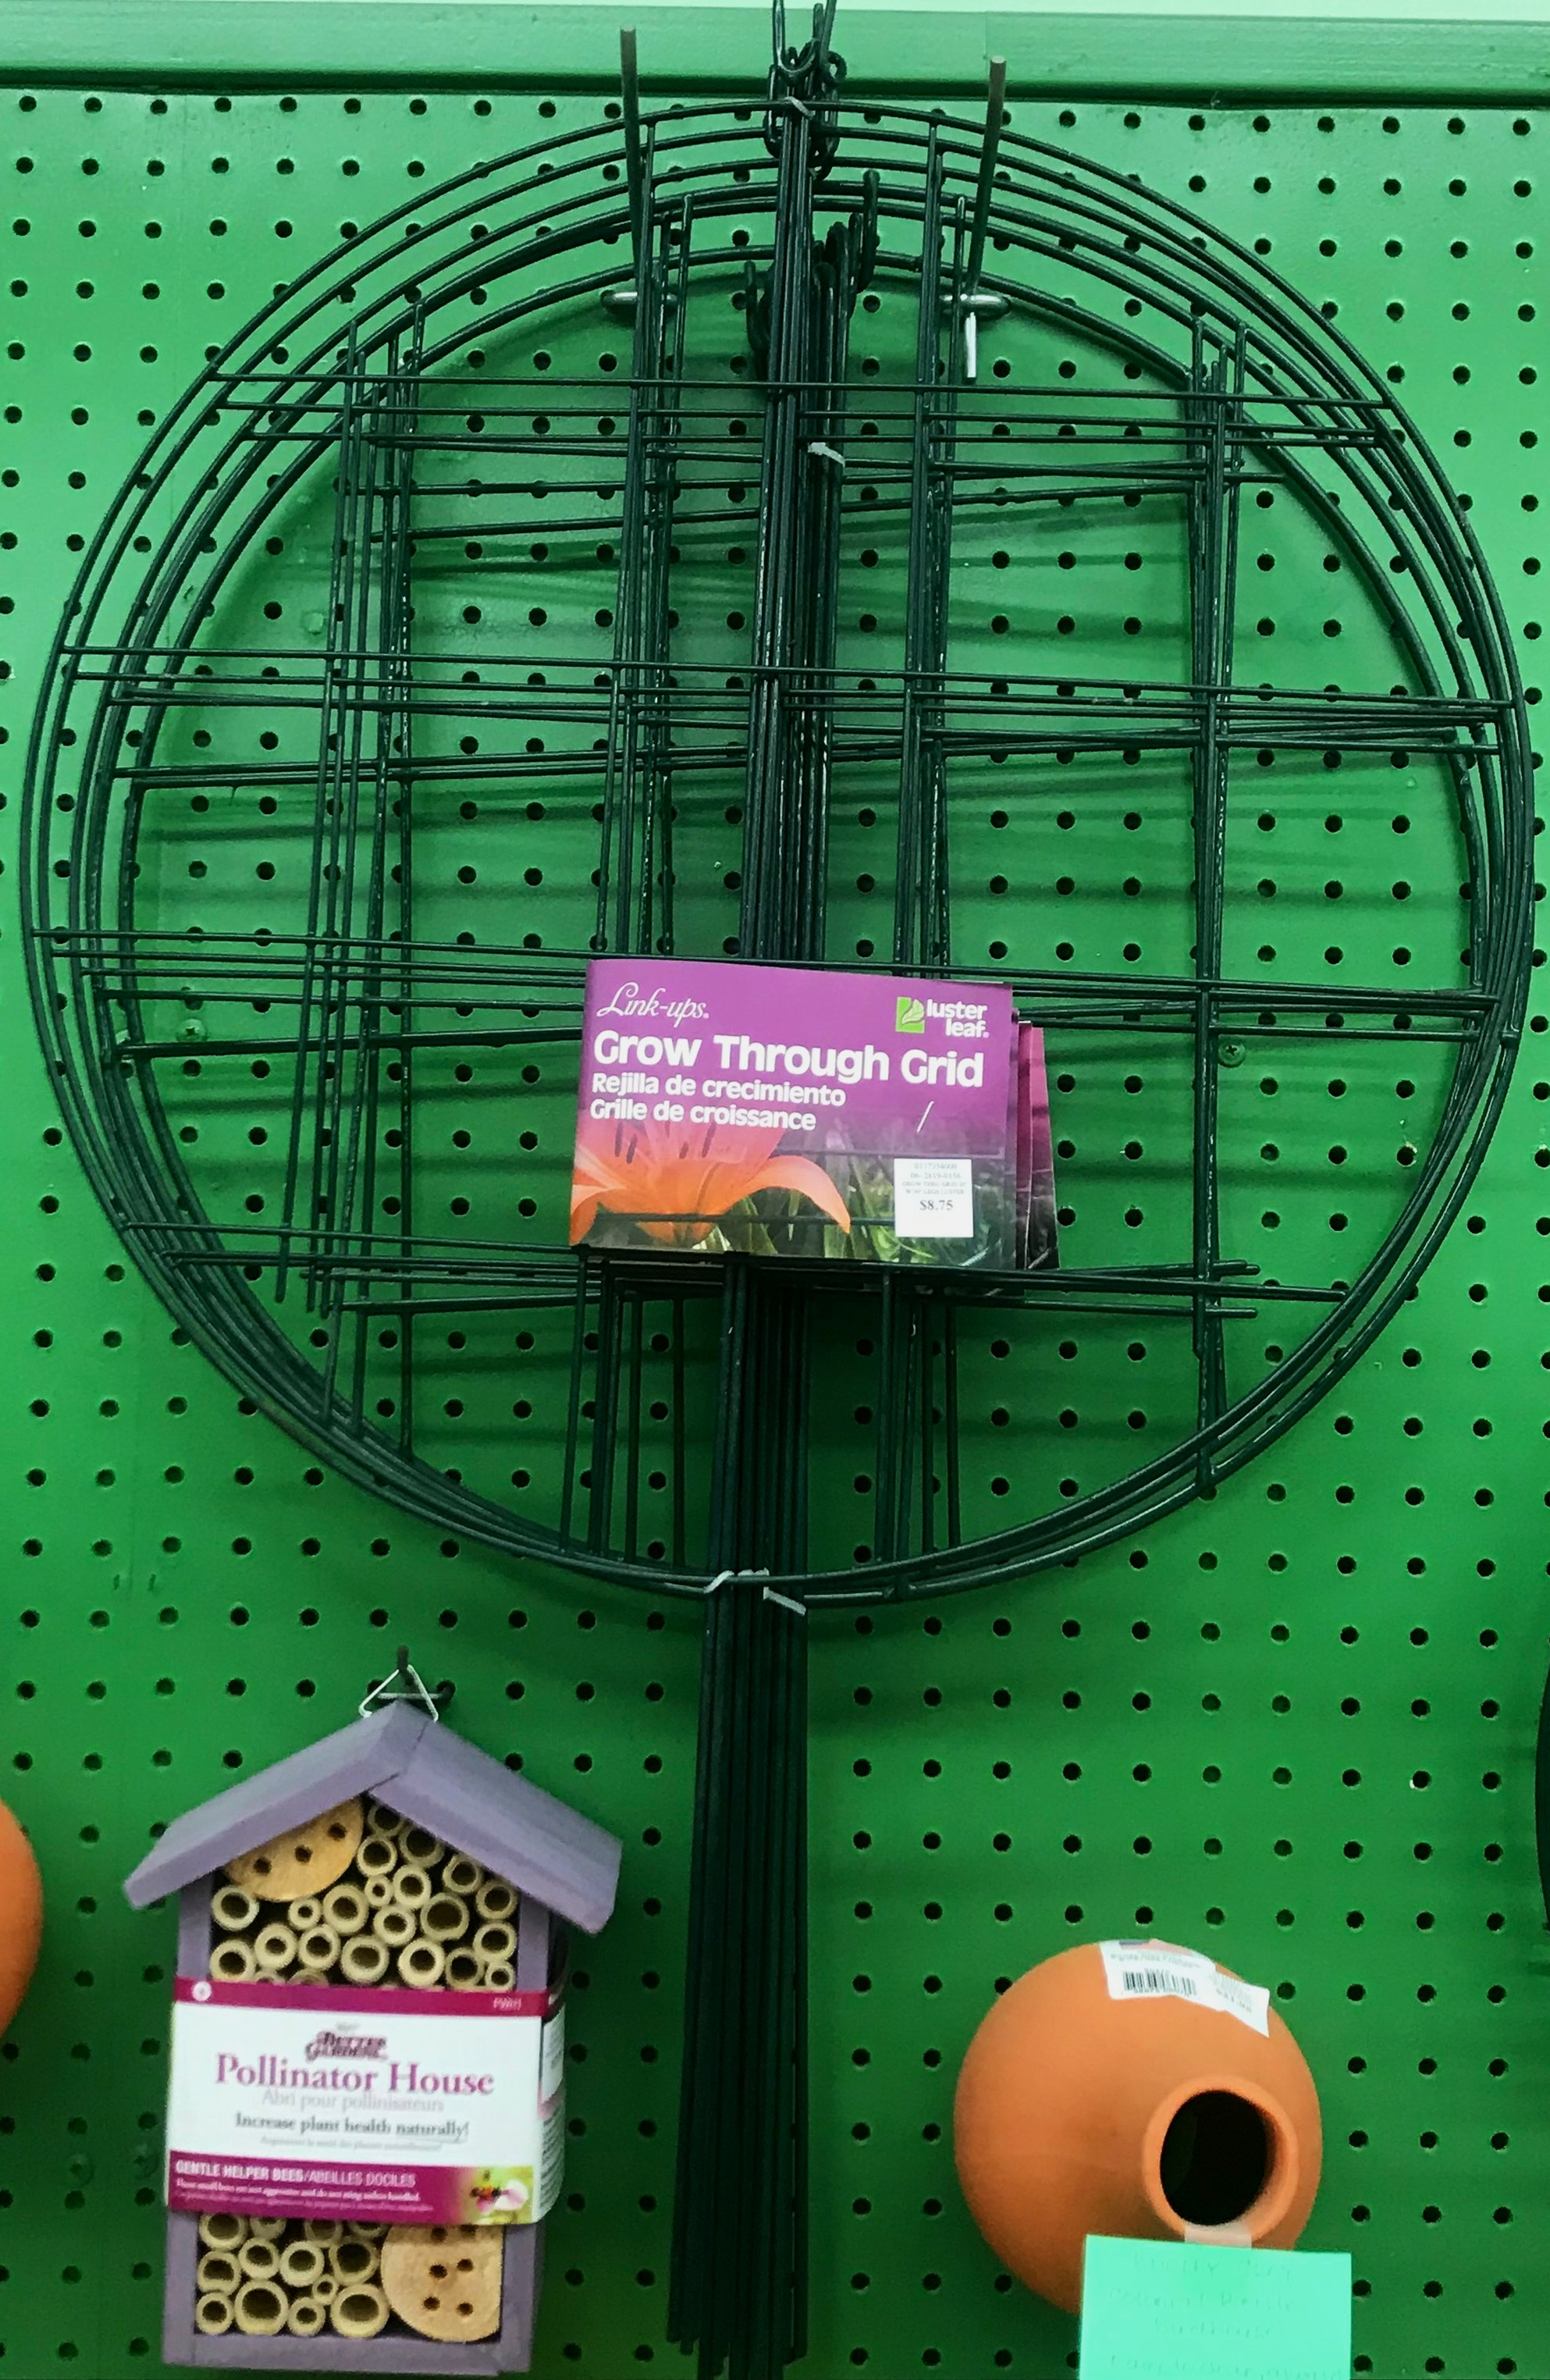 We have a variety of plants props, both for your ornamentals and for things like tomatoes!